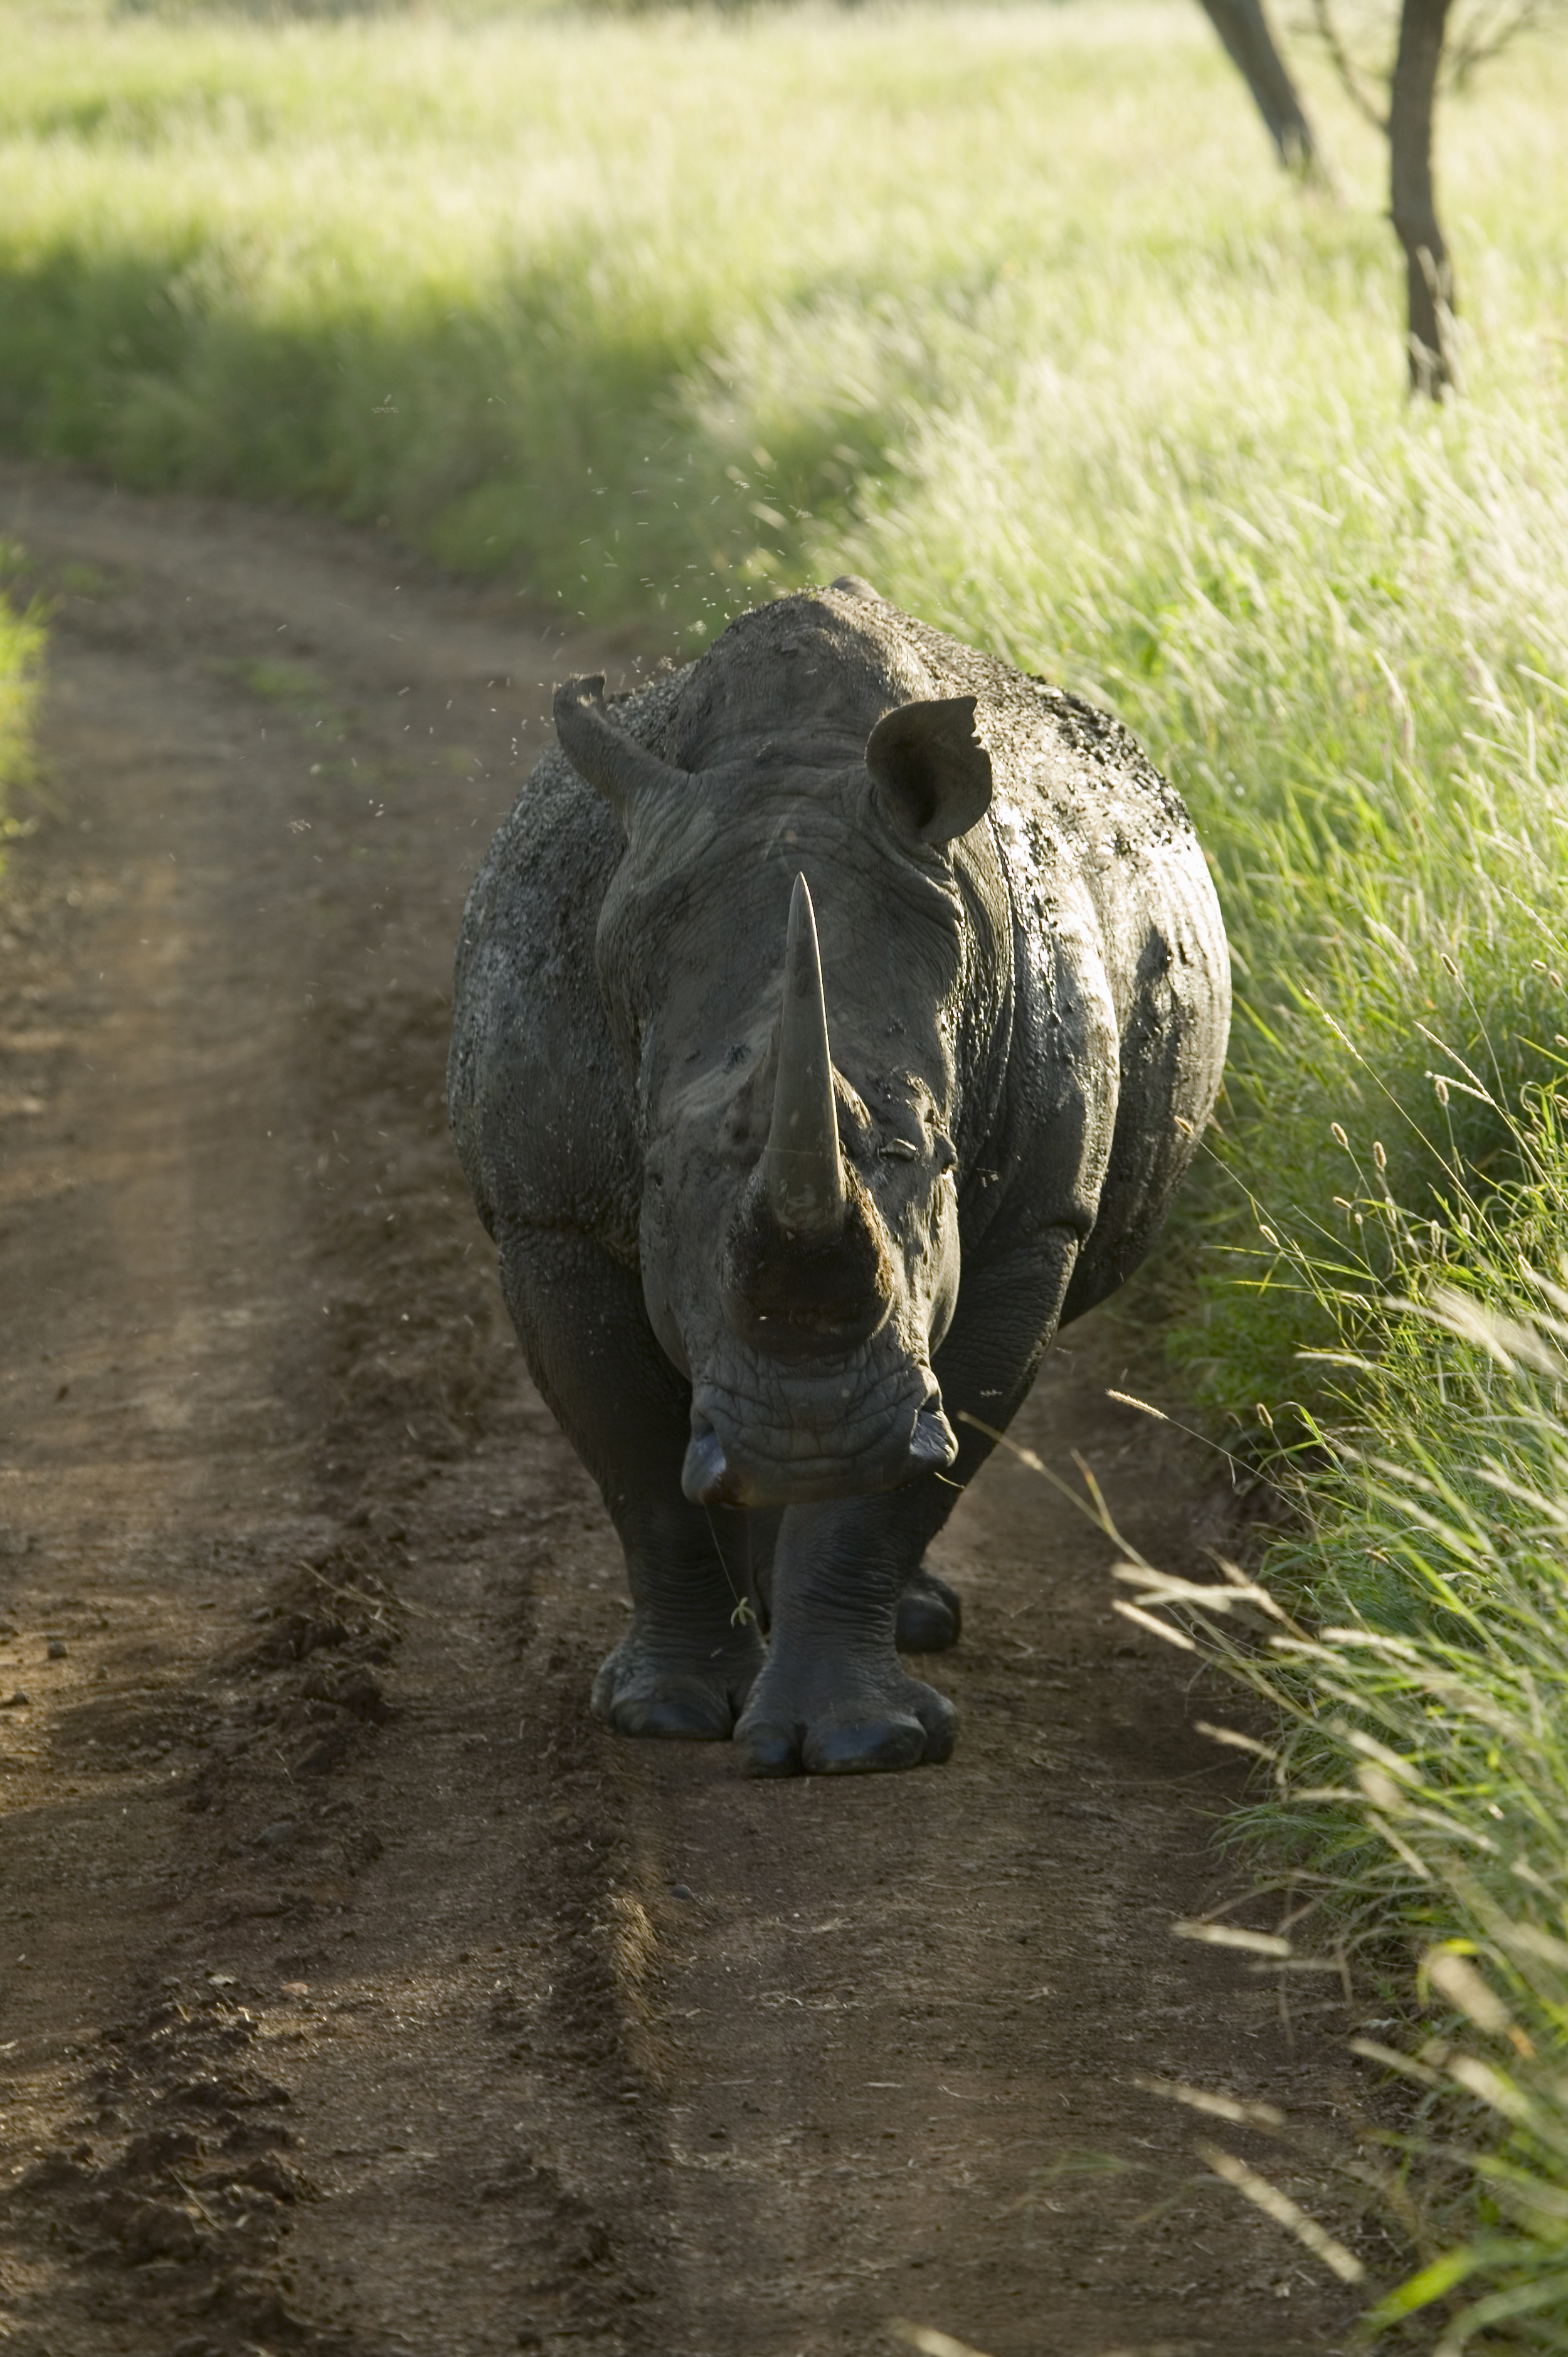 Endangered White Rhino in the middle of the road of Lewa Wildlife Conservancy, North Kenya, Africa